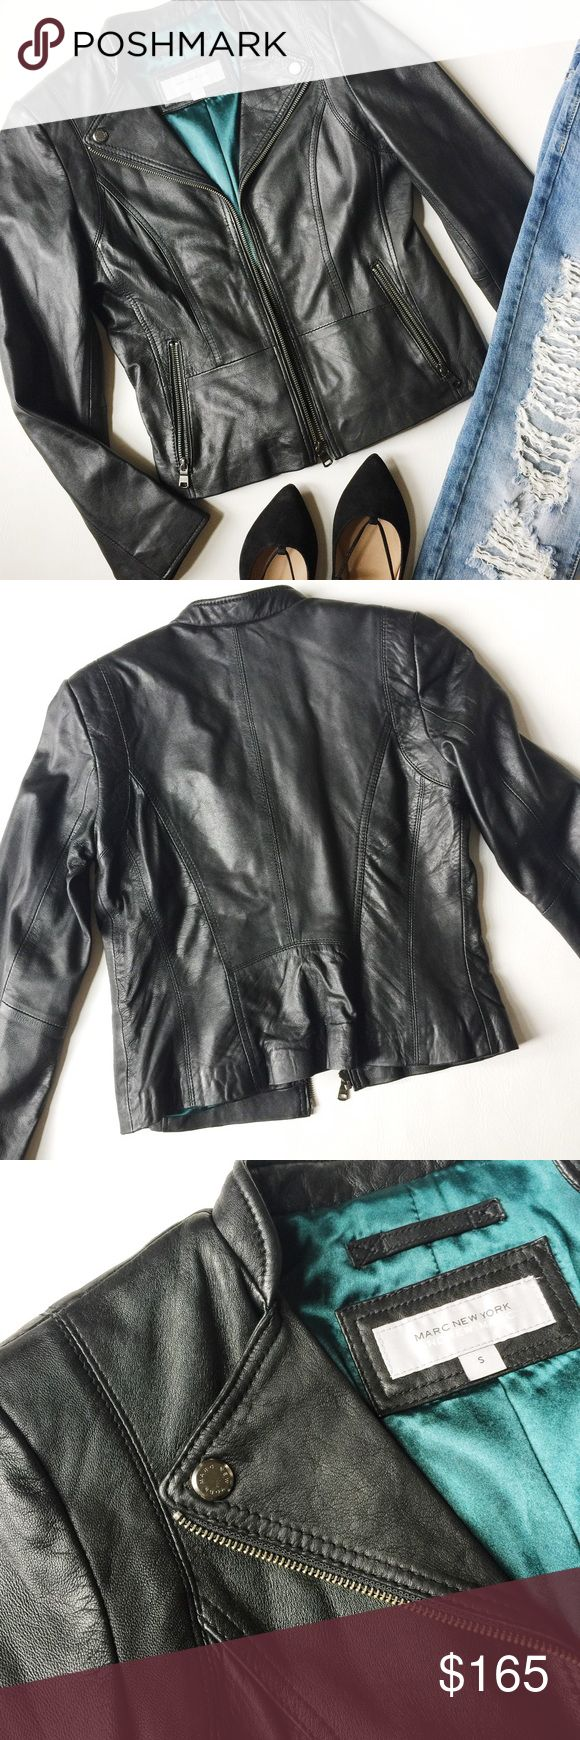 "Marc New York Leather Moto Jacket Marc New York Leather Moto Jacket in black featuring mandarin collar and silver tone hardware.  Simple but luxurious and on trend!  Butter soft lambskin leather.  Pre-loved but in excellent condition.  No holes, stains or damage.  Stock photo used to show fit but shown in different color.  Measurements laying flat: Armpit to armpit: 17.5"" Waist (across): 16.5""  Total length: 21""  Sleeve length: 24"" (approx.) Andrew Marc Jackets & Coats"